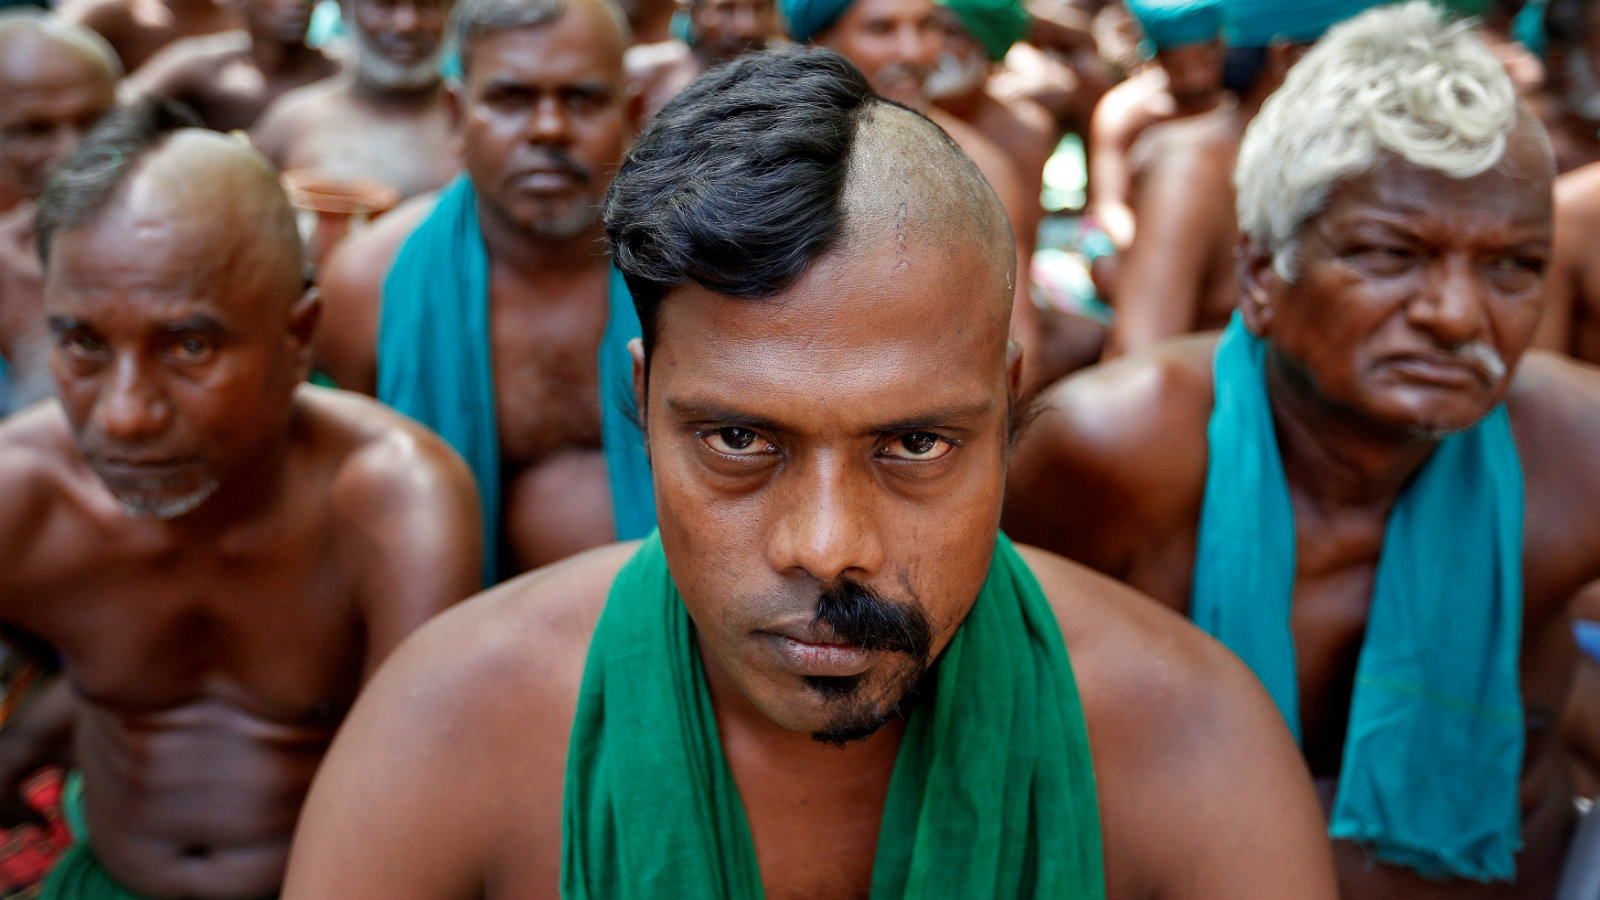 Tamil farmers pose half shaved during a protest demanding a drought-relief package from the Narendra Modi government, in New Delhi.